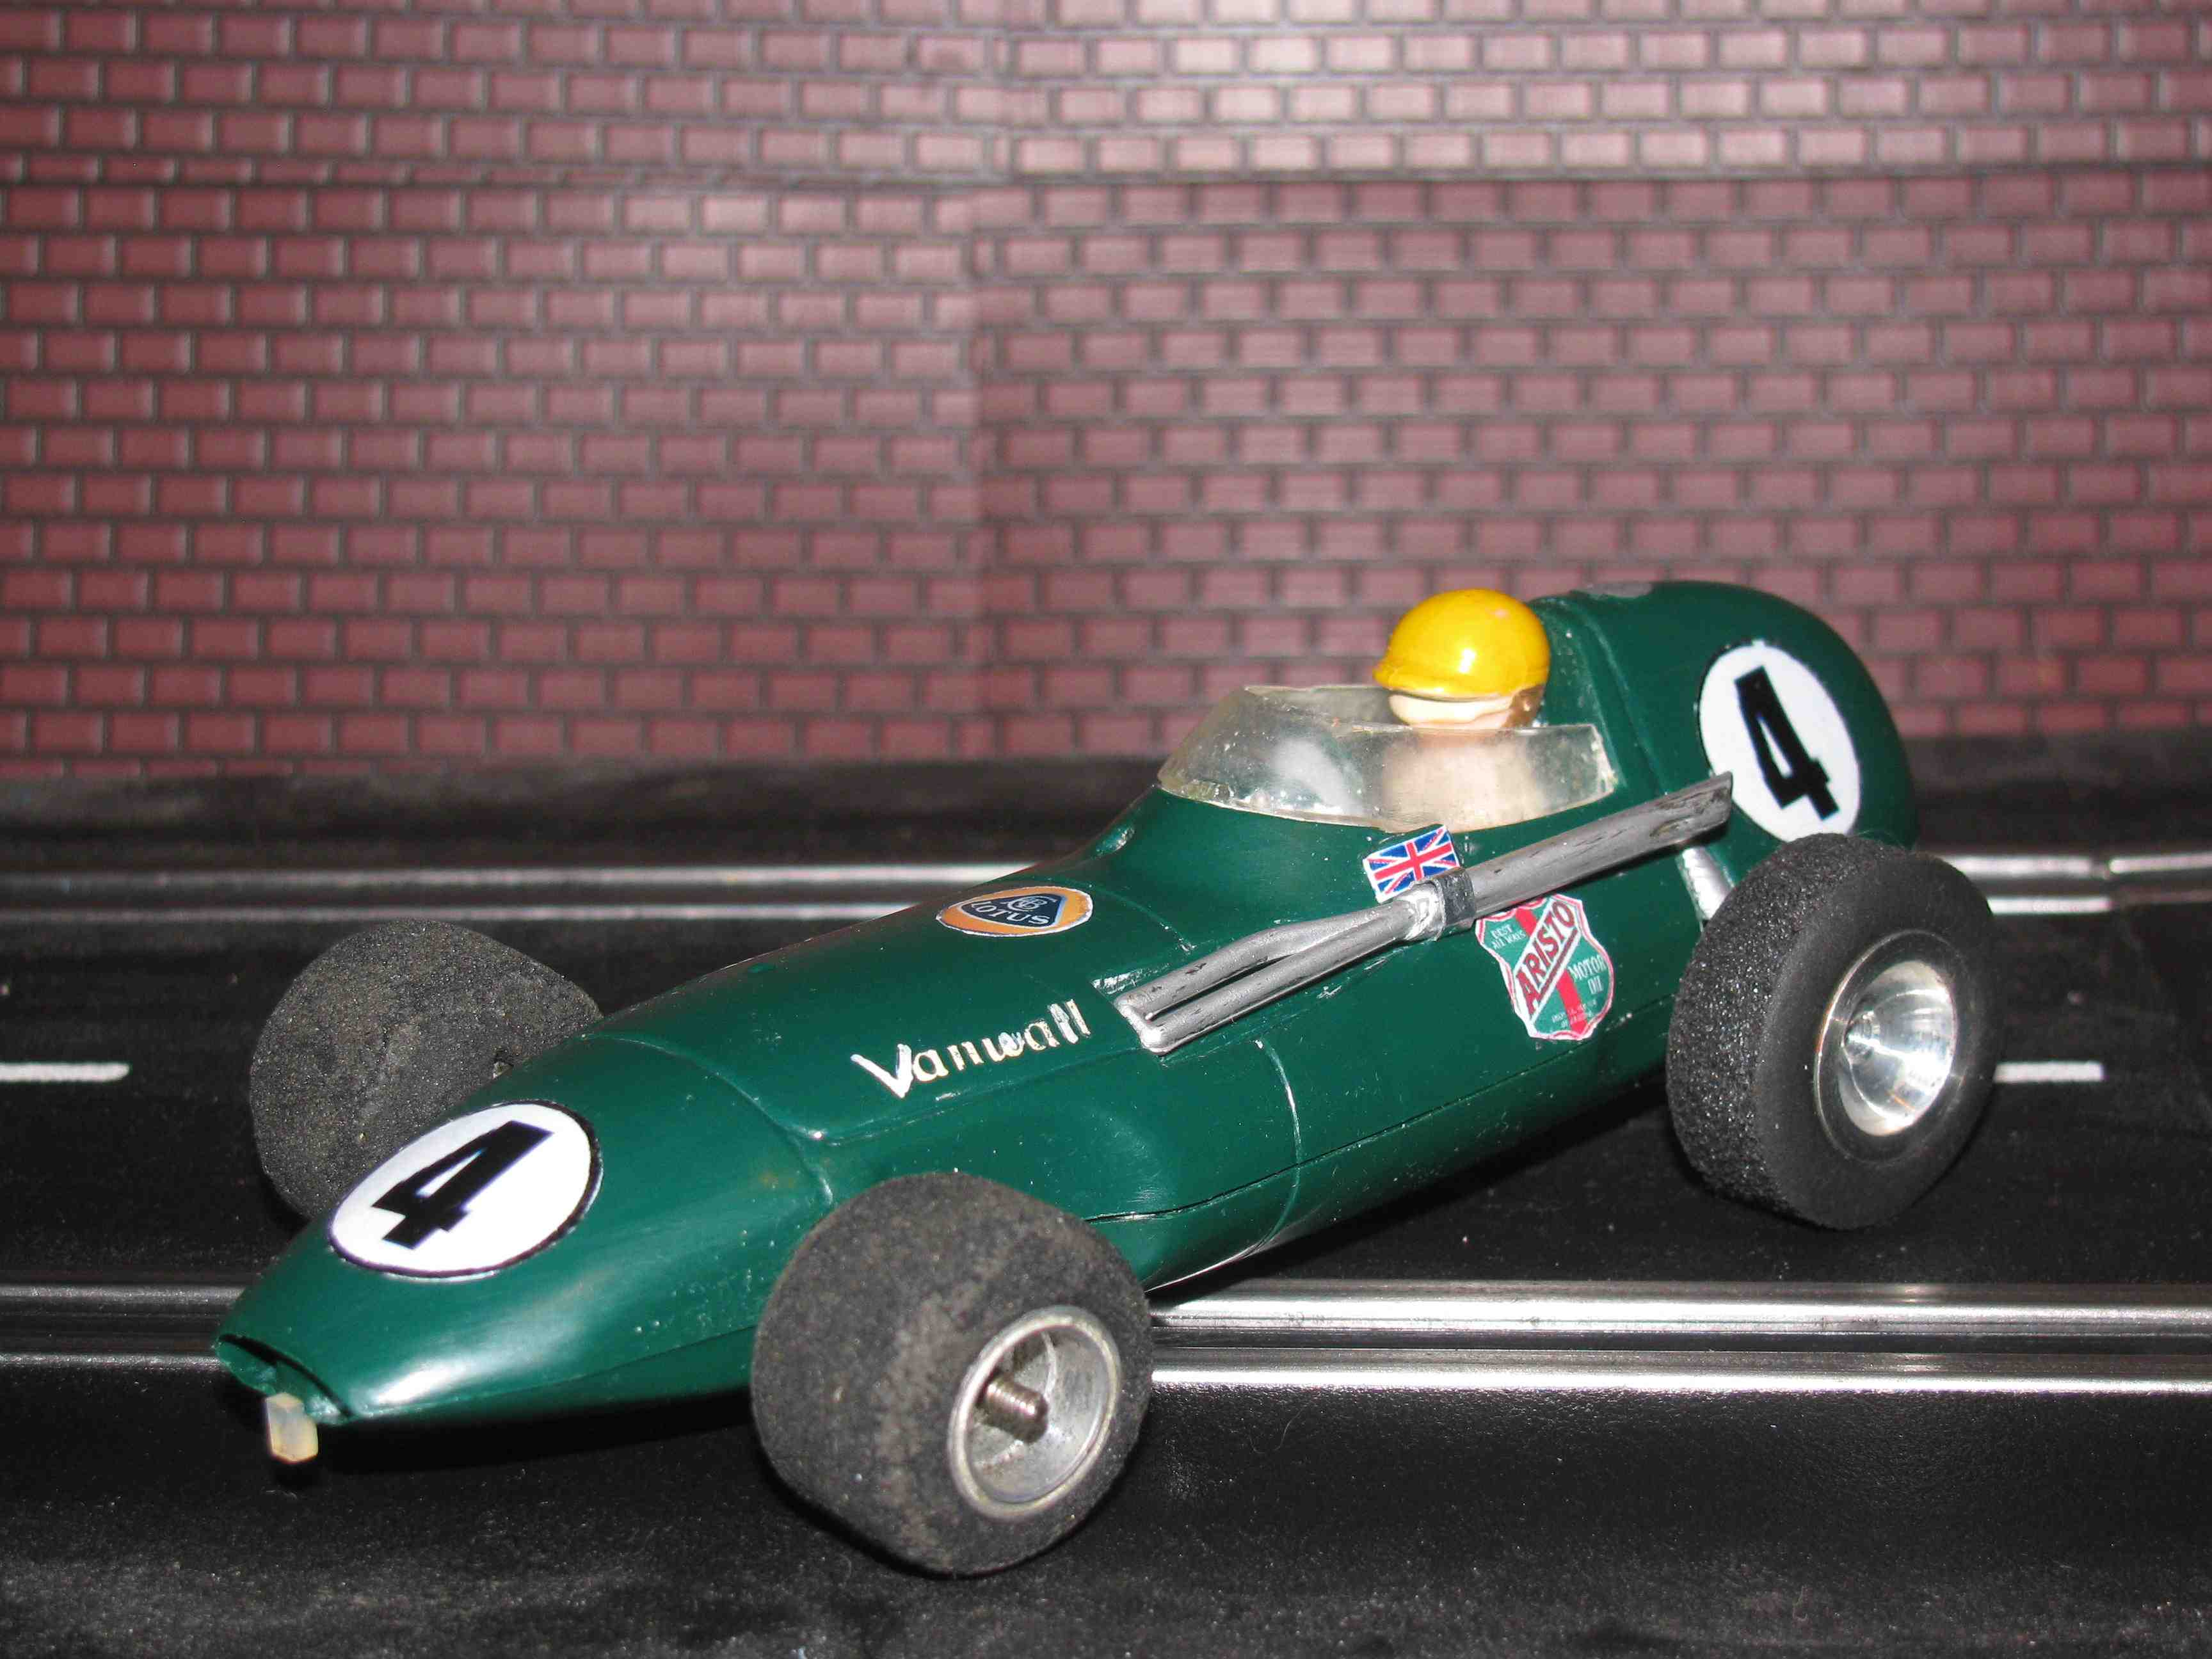 * SOLD * Scalextric Triang Lotus Vanwall - Green - MM/C.55 - 1/24 Scale Slot Car – 1/24 Scale